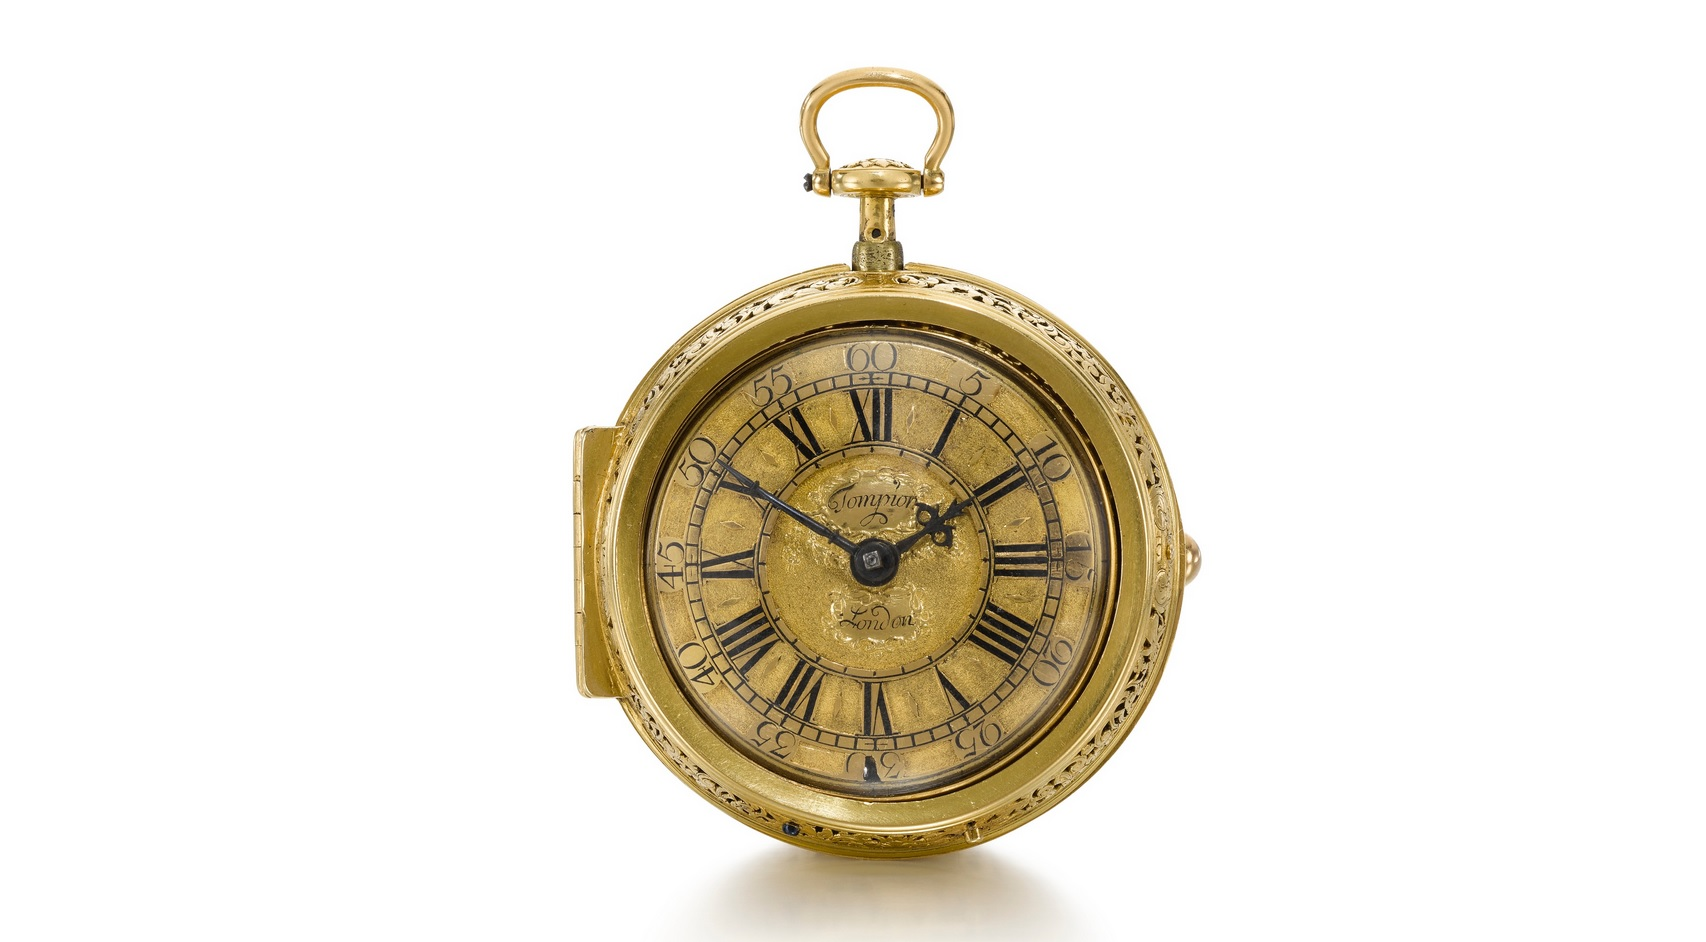 Sotheby's Auctions Off Early 1700s Thomas Tompion Pocket Watch For $233,000